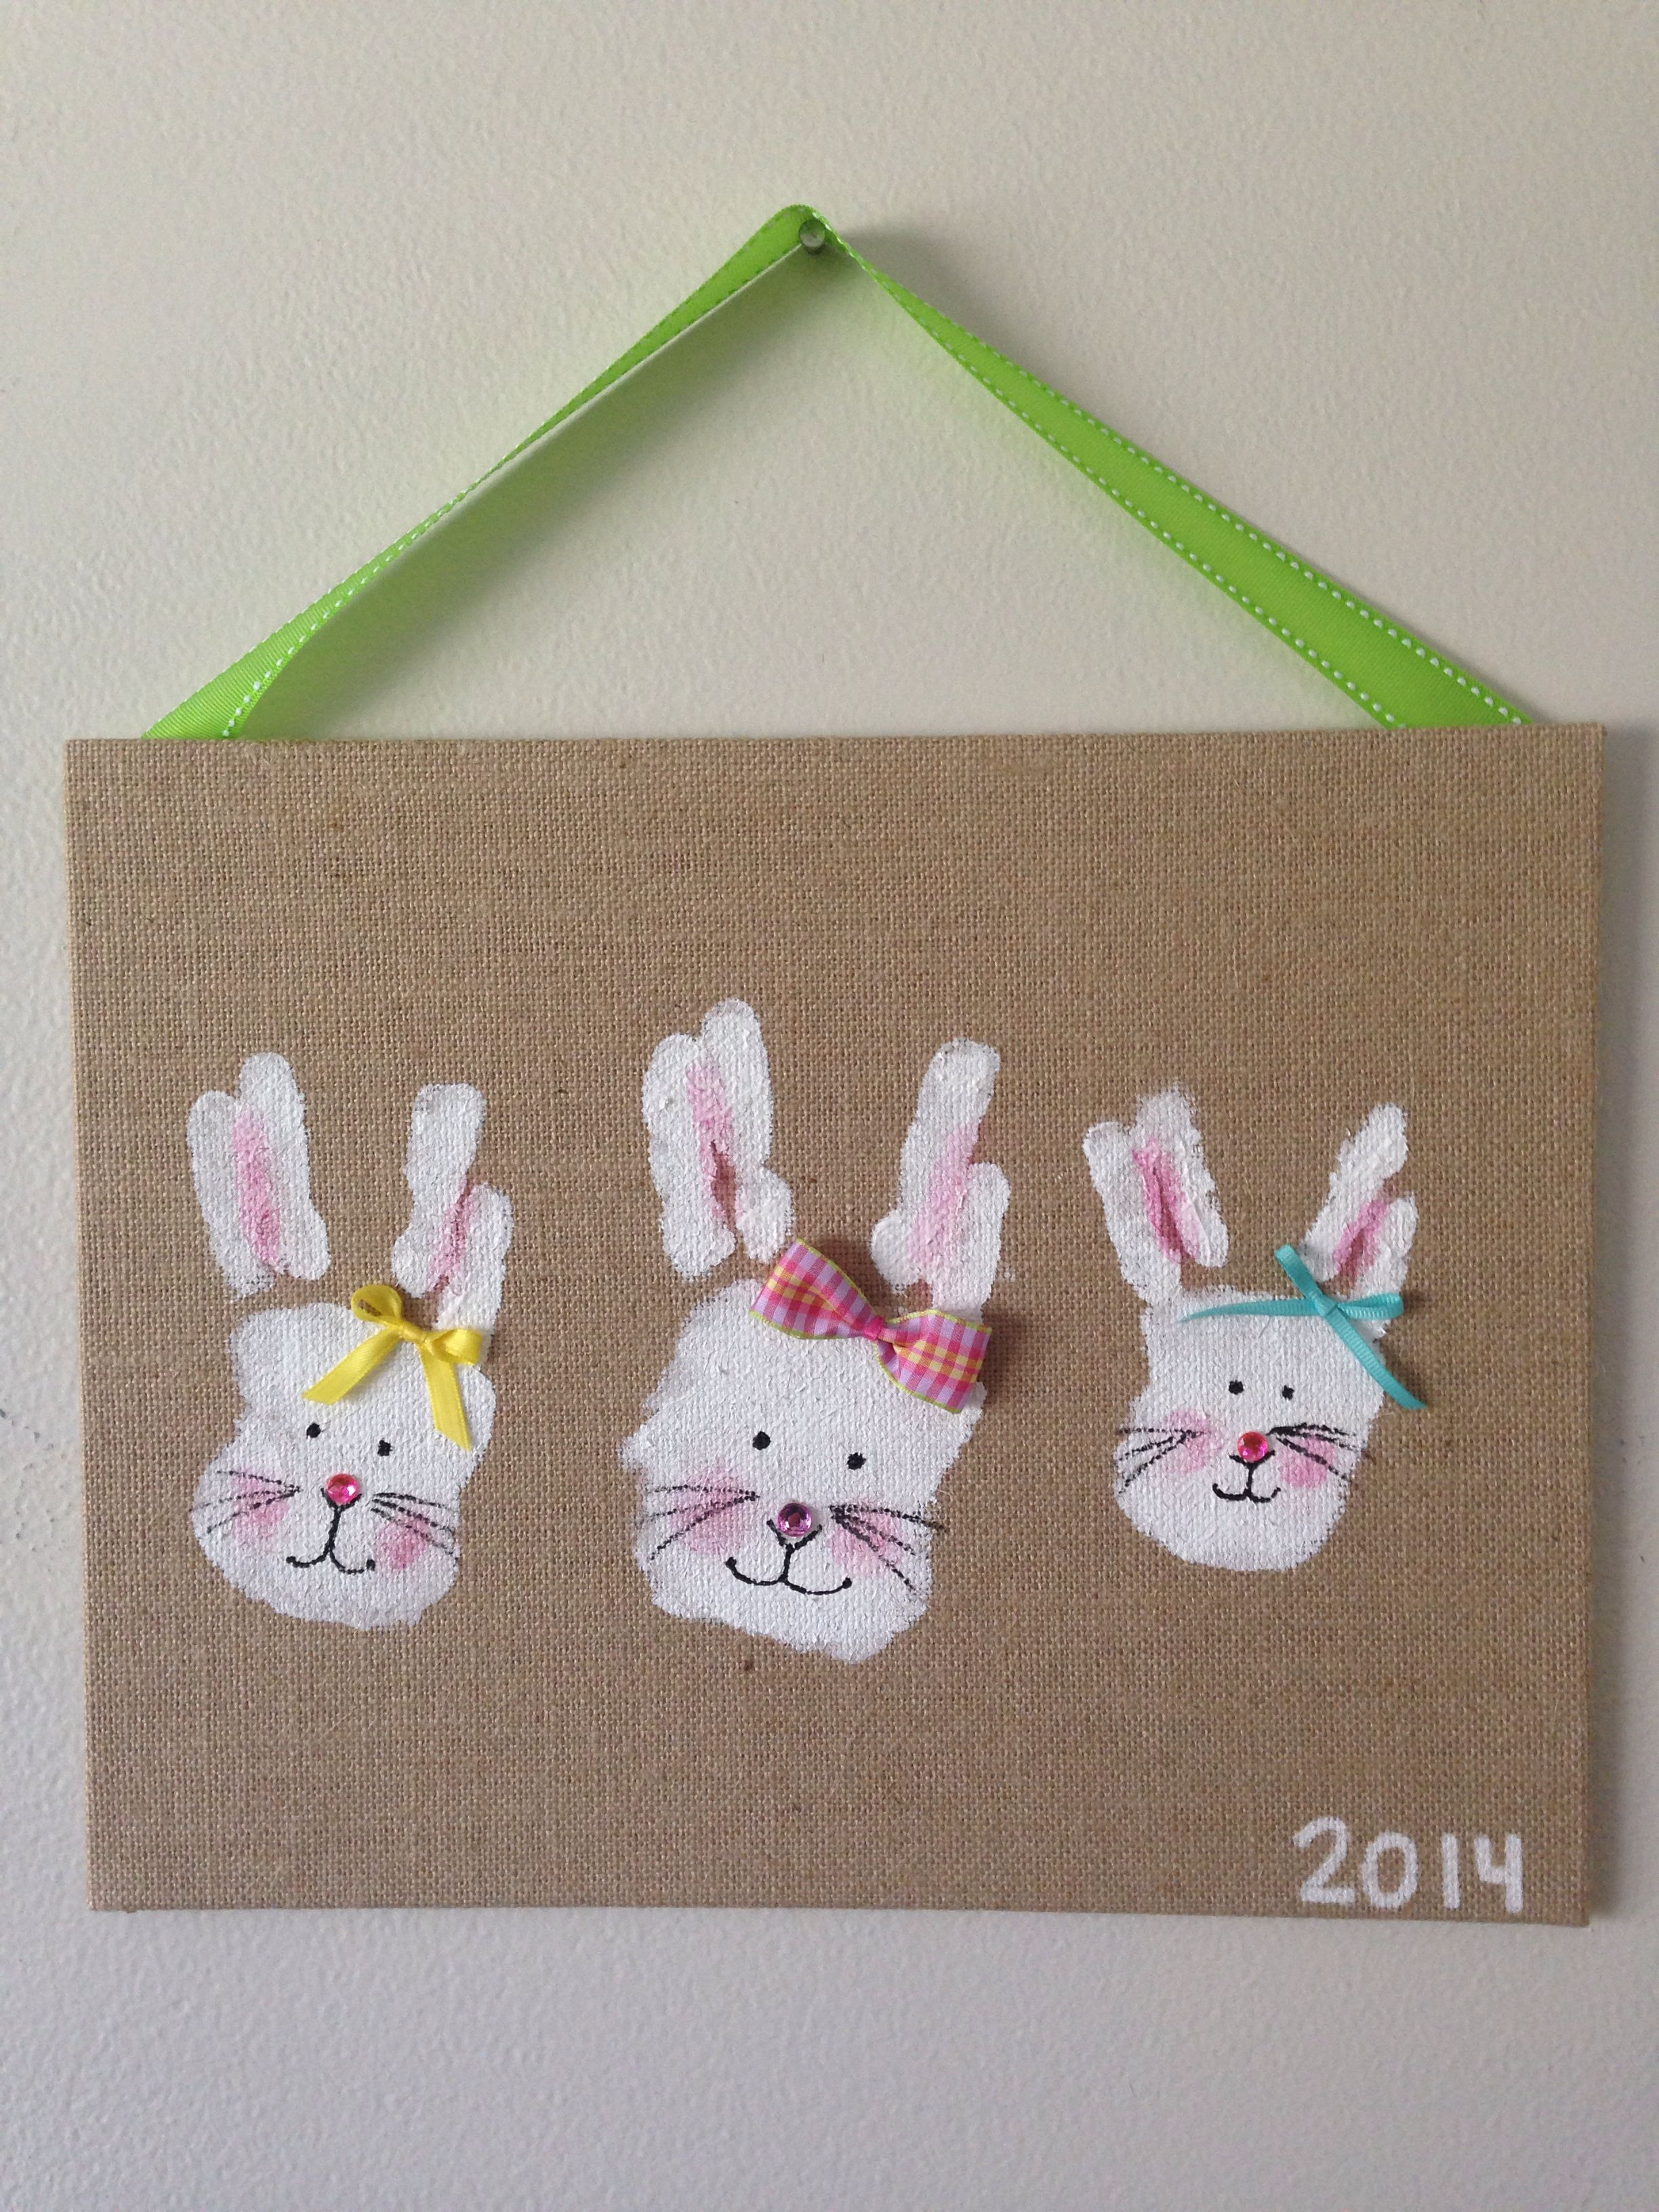 Bunny Handprints Made From Burlap Canvas And Acrylic